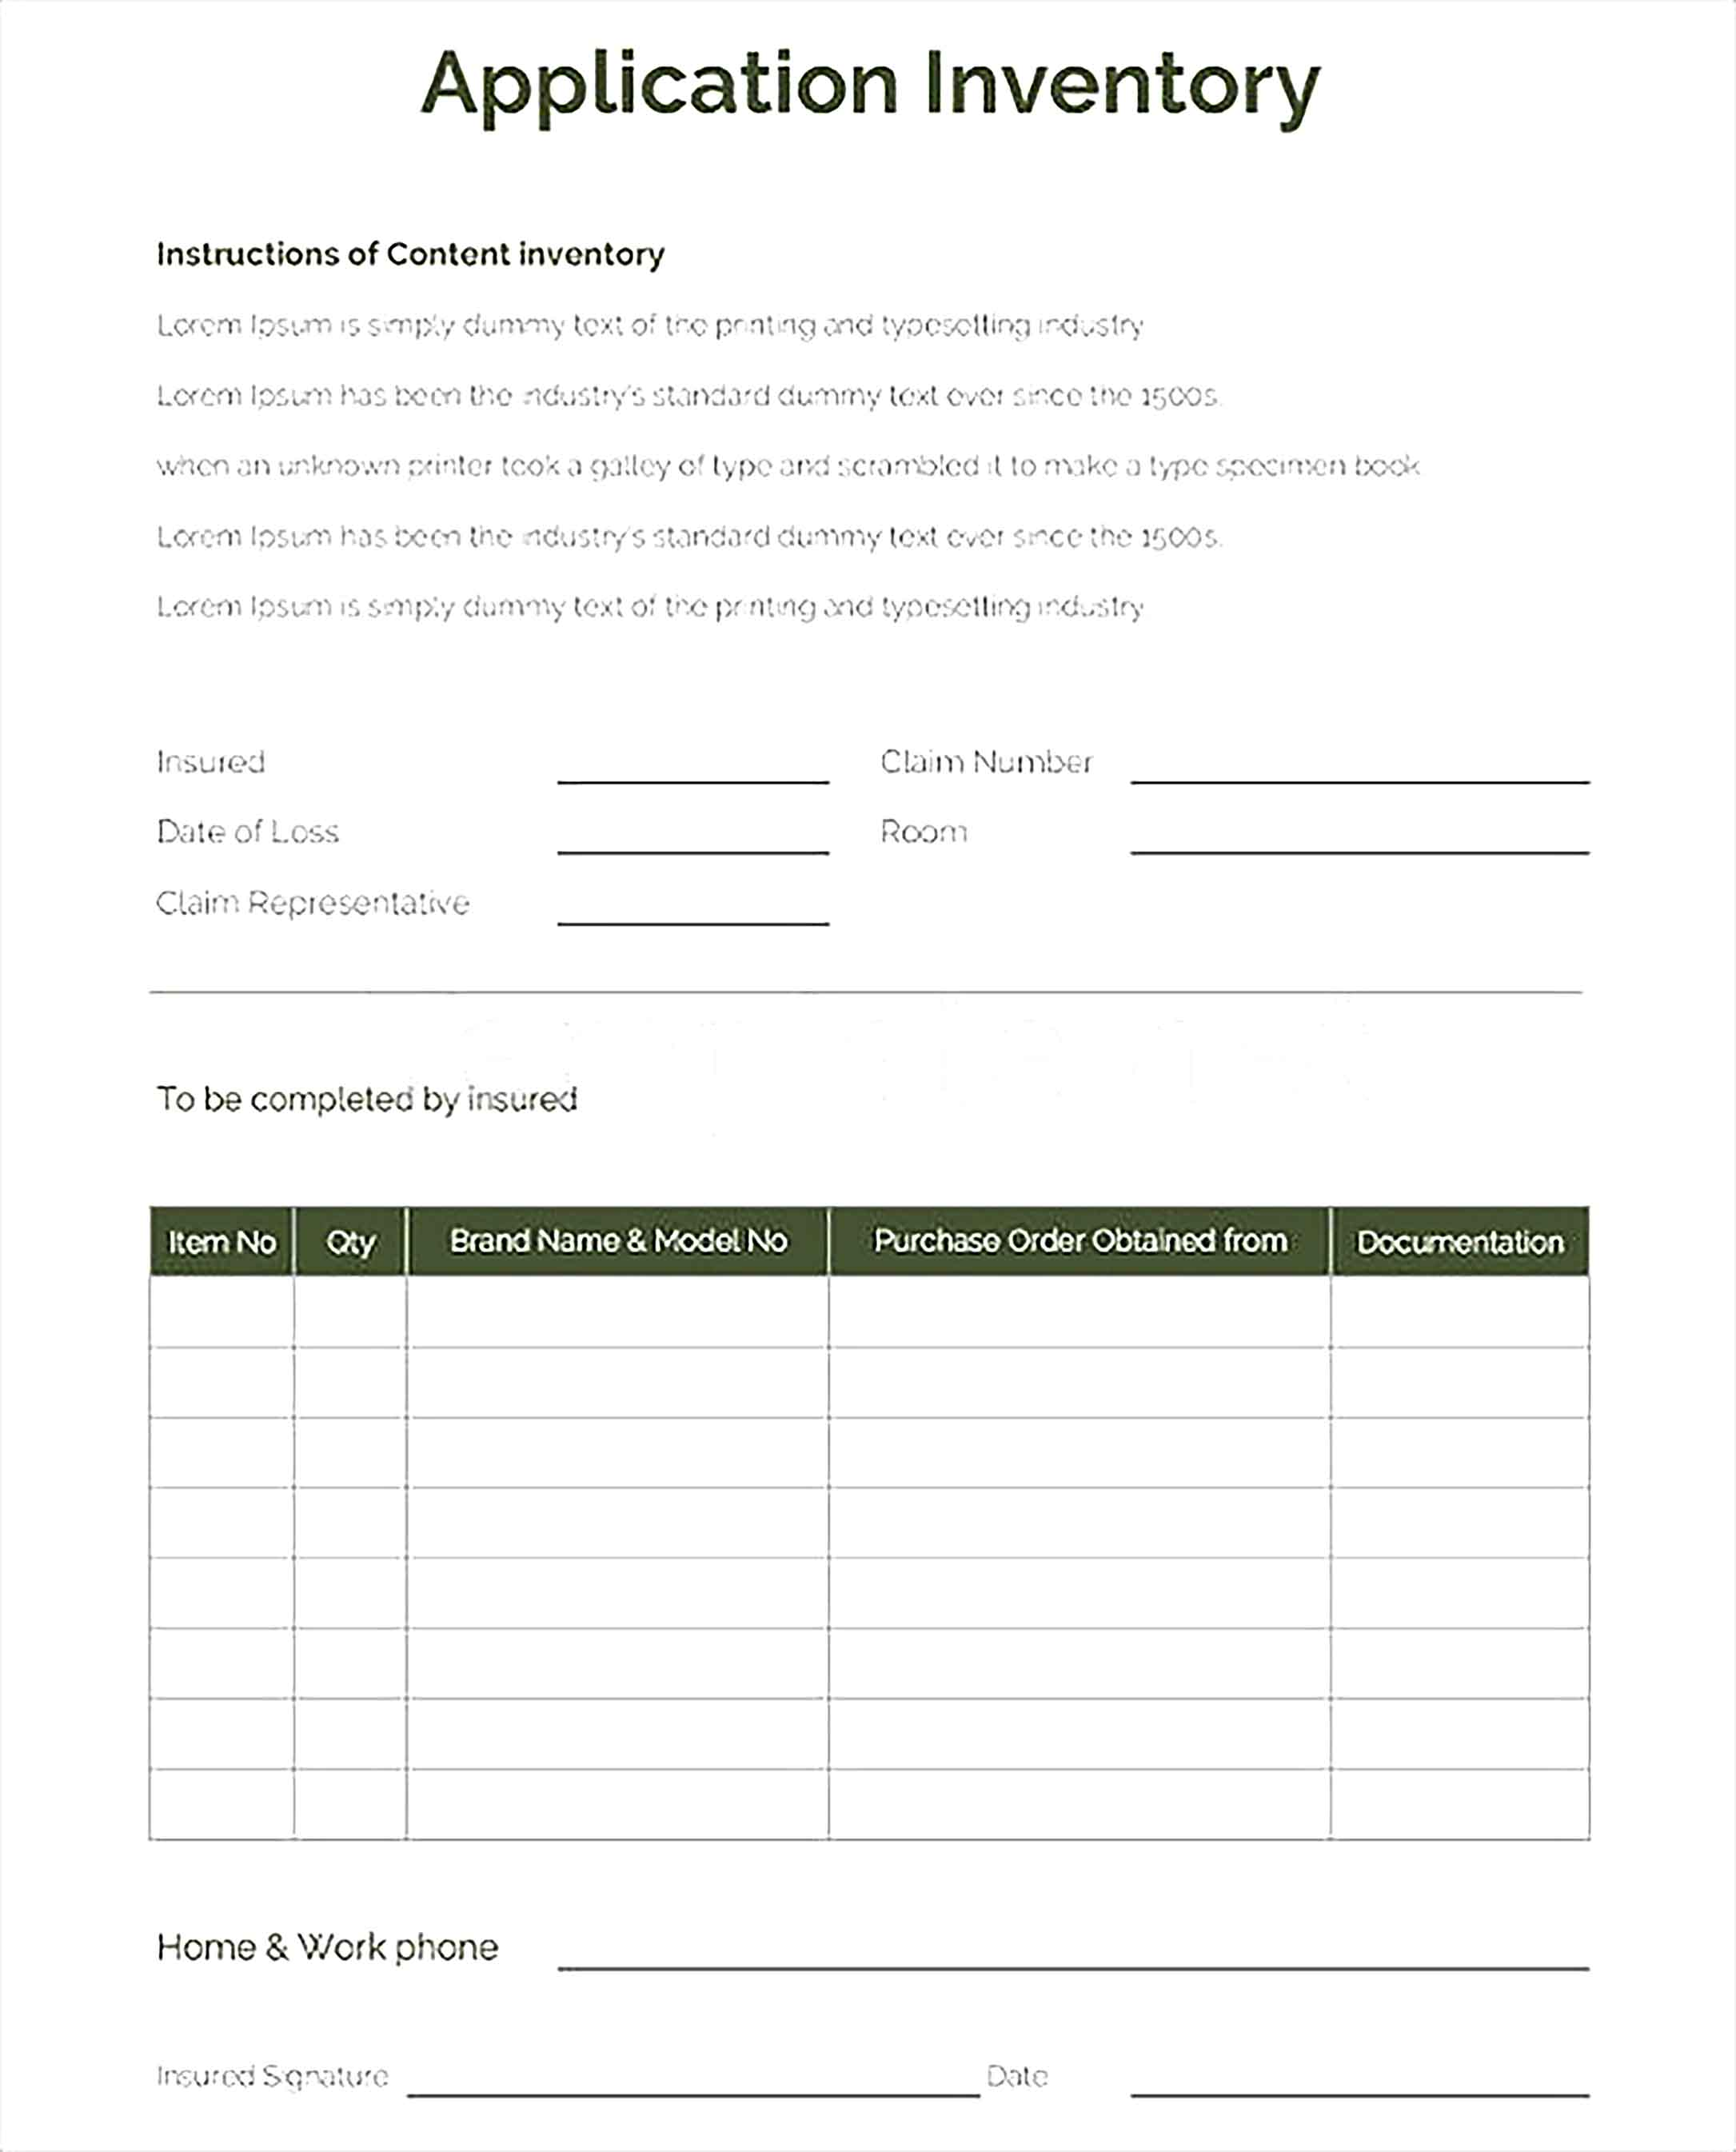 Application Inventory Template